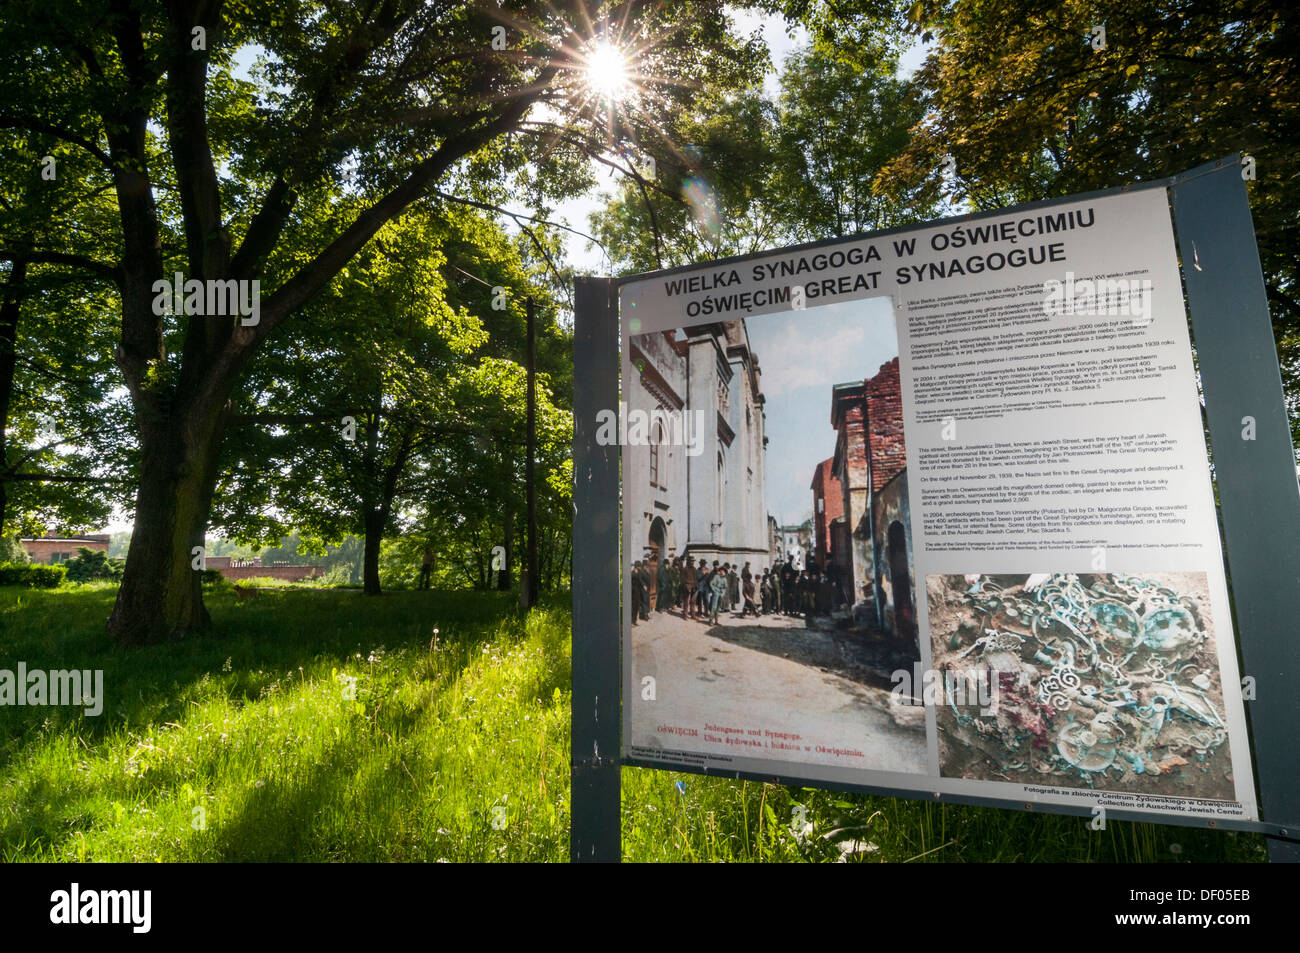 Sign where the Great Synagogue stood until 1939, Auschwitz, Oświęcim, Lesser Poland, Poland, Europe - Stock Image